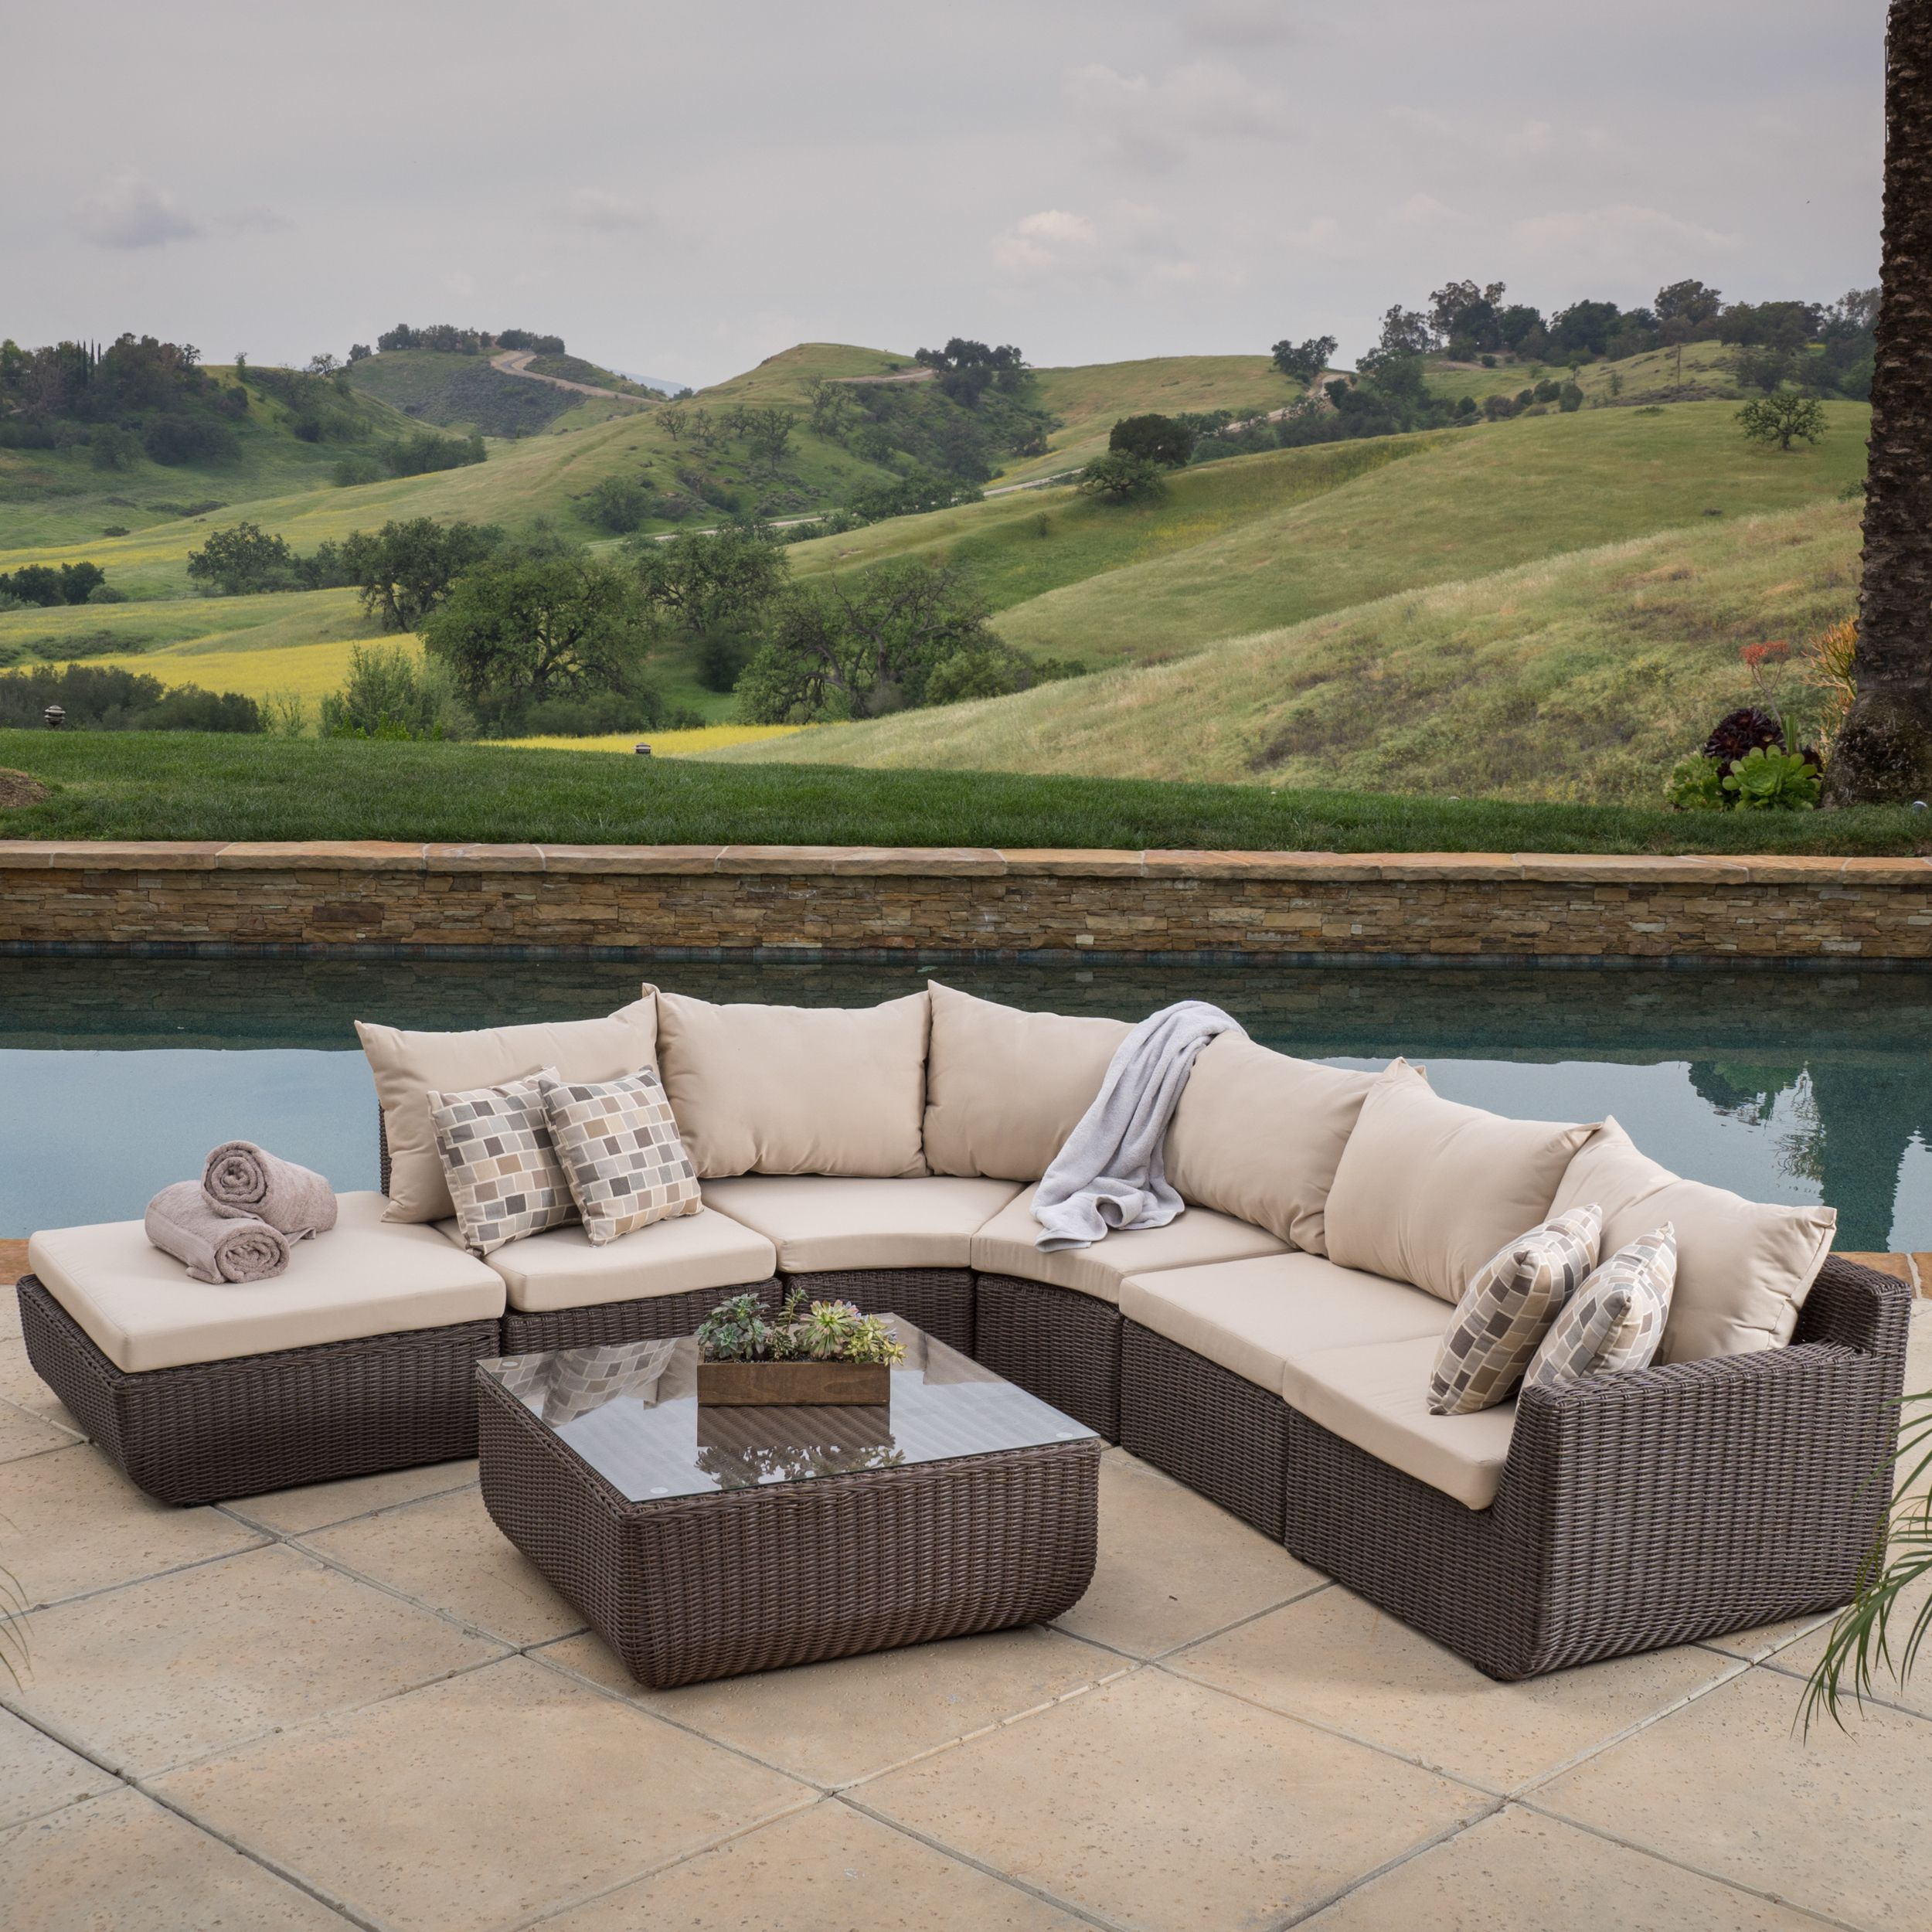 Best Carmel 7 Piece Outdoor Sofa Sectional With Sunbrella 400 x 300